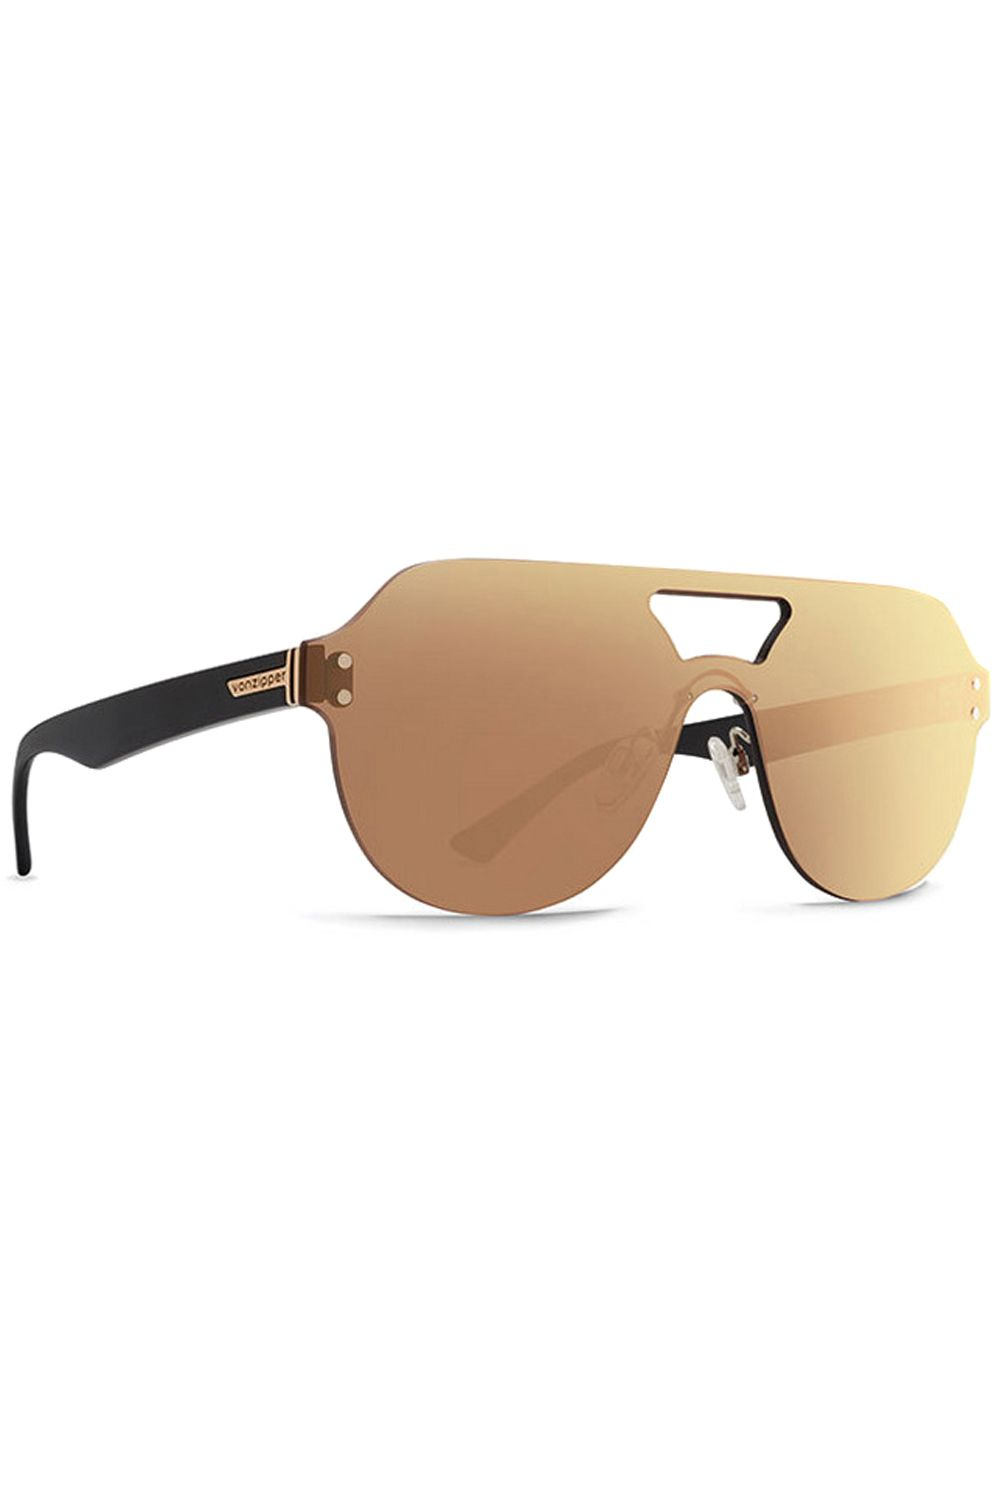 Oculos VonZipper ALT PSYCHWIG Black Gloss (arms) / Flash Chrome Gold